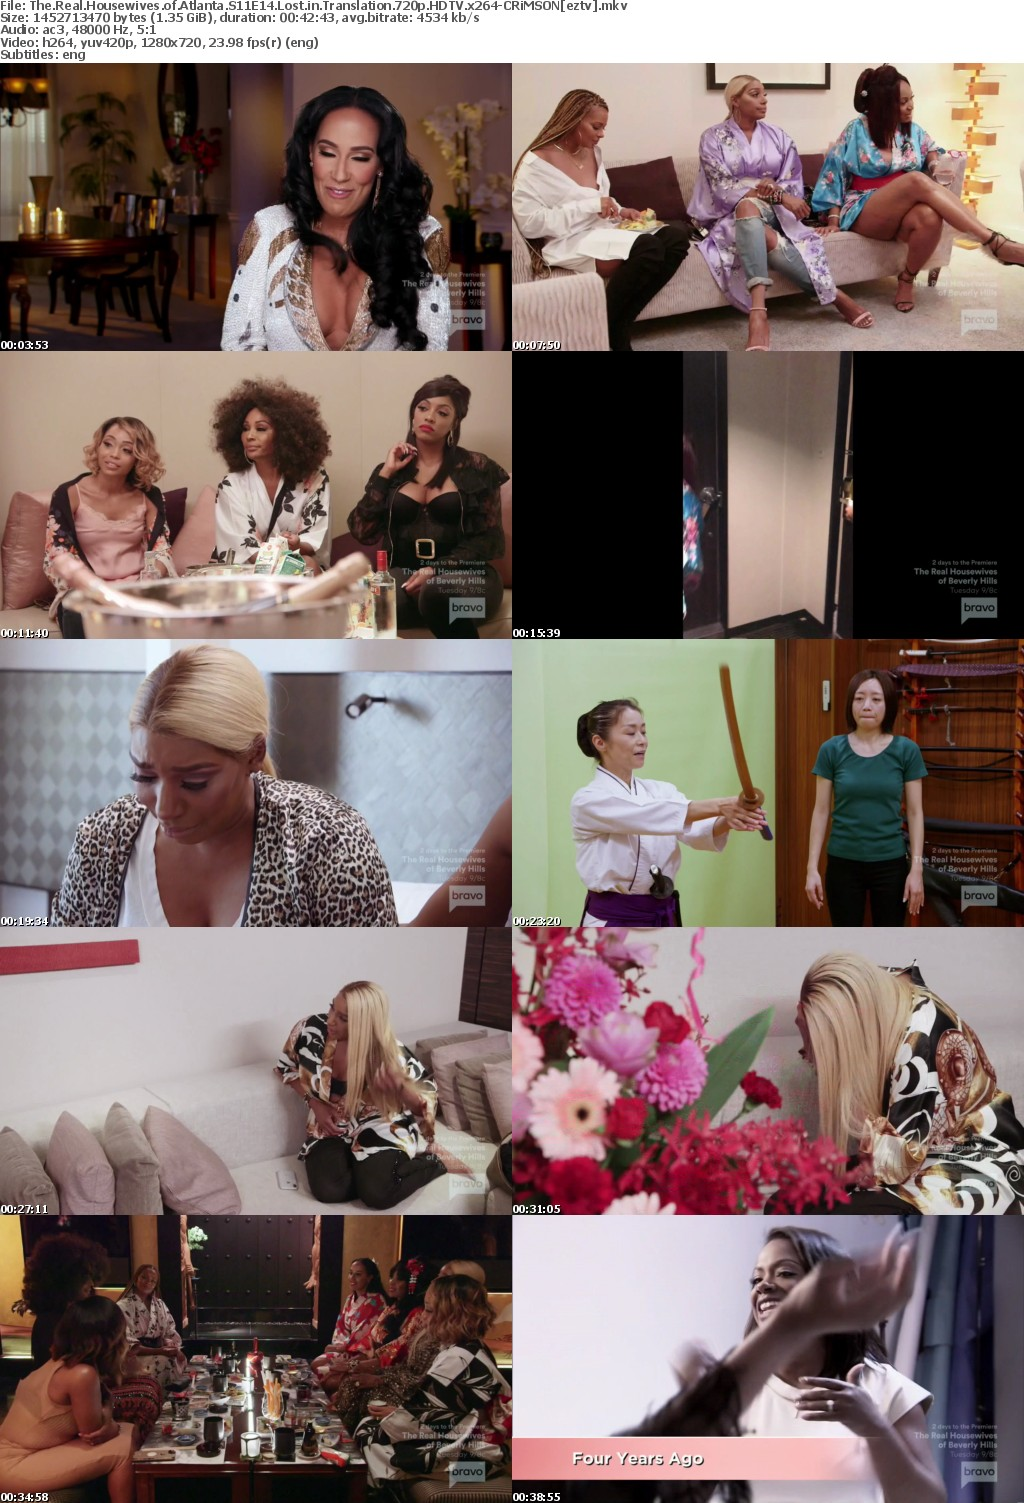 The Real Housewives of Atlanta S11E14 Lost in Translation 720p HDTV x264-CRiMSON